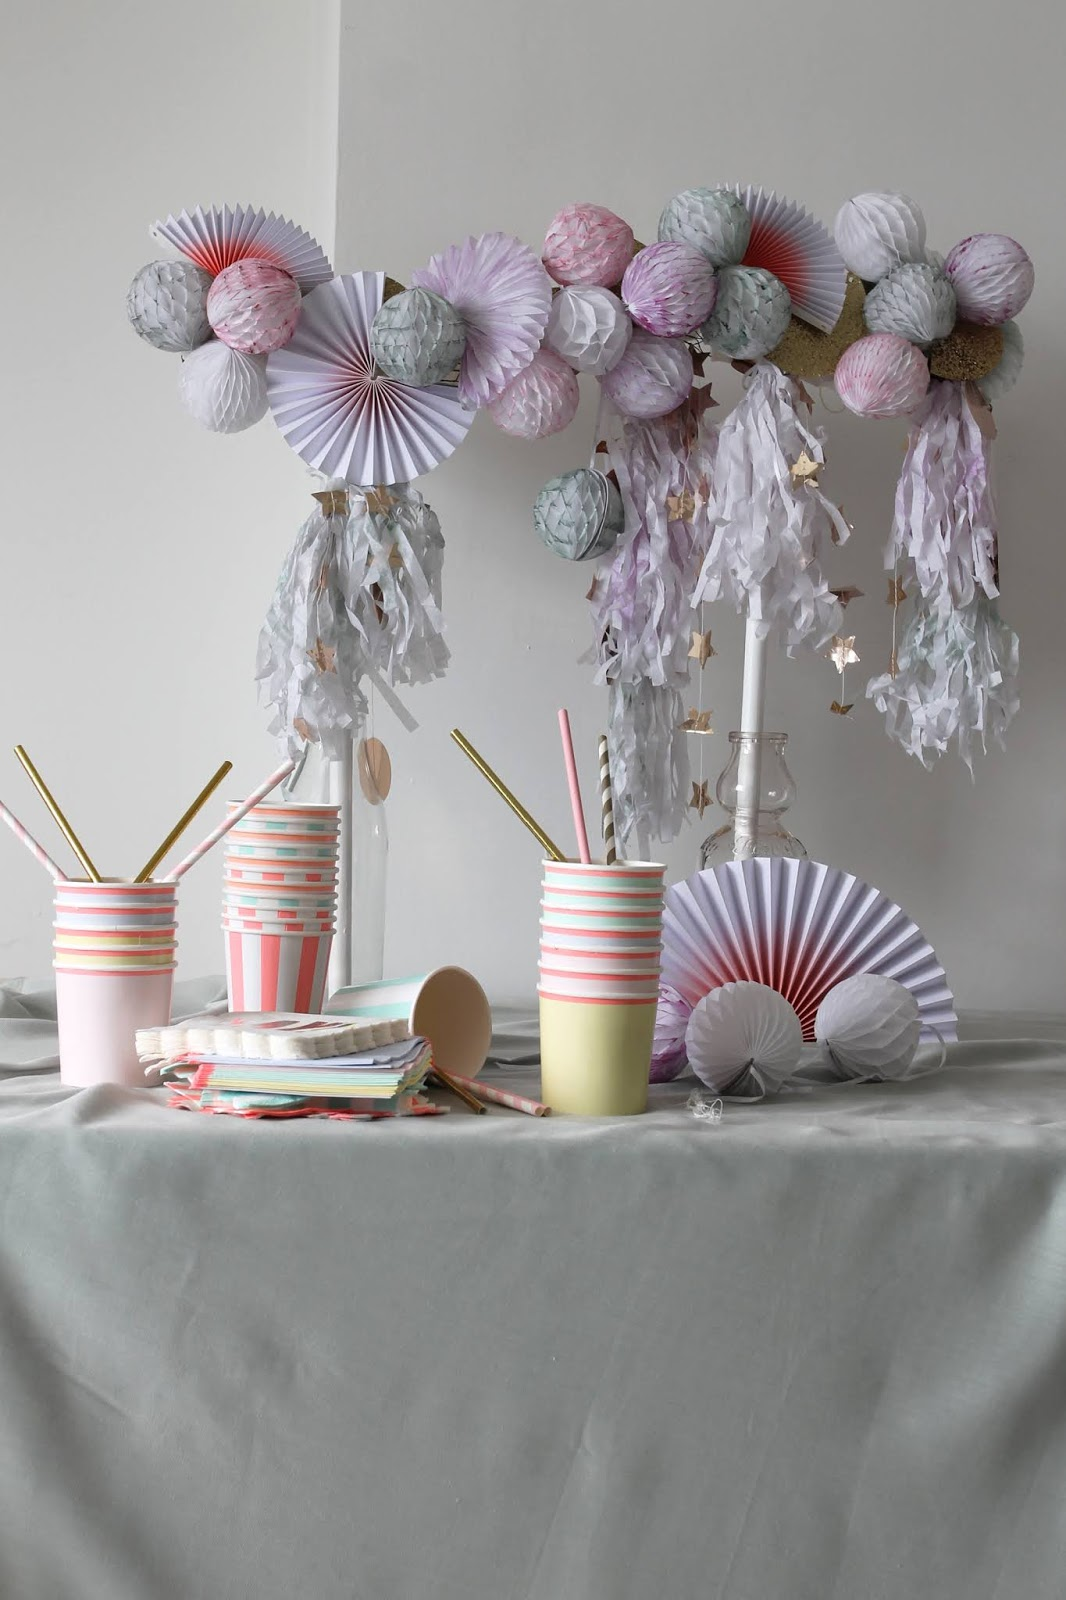 Watercolour & Gold Honeycomb Ball Table Decoration